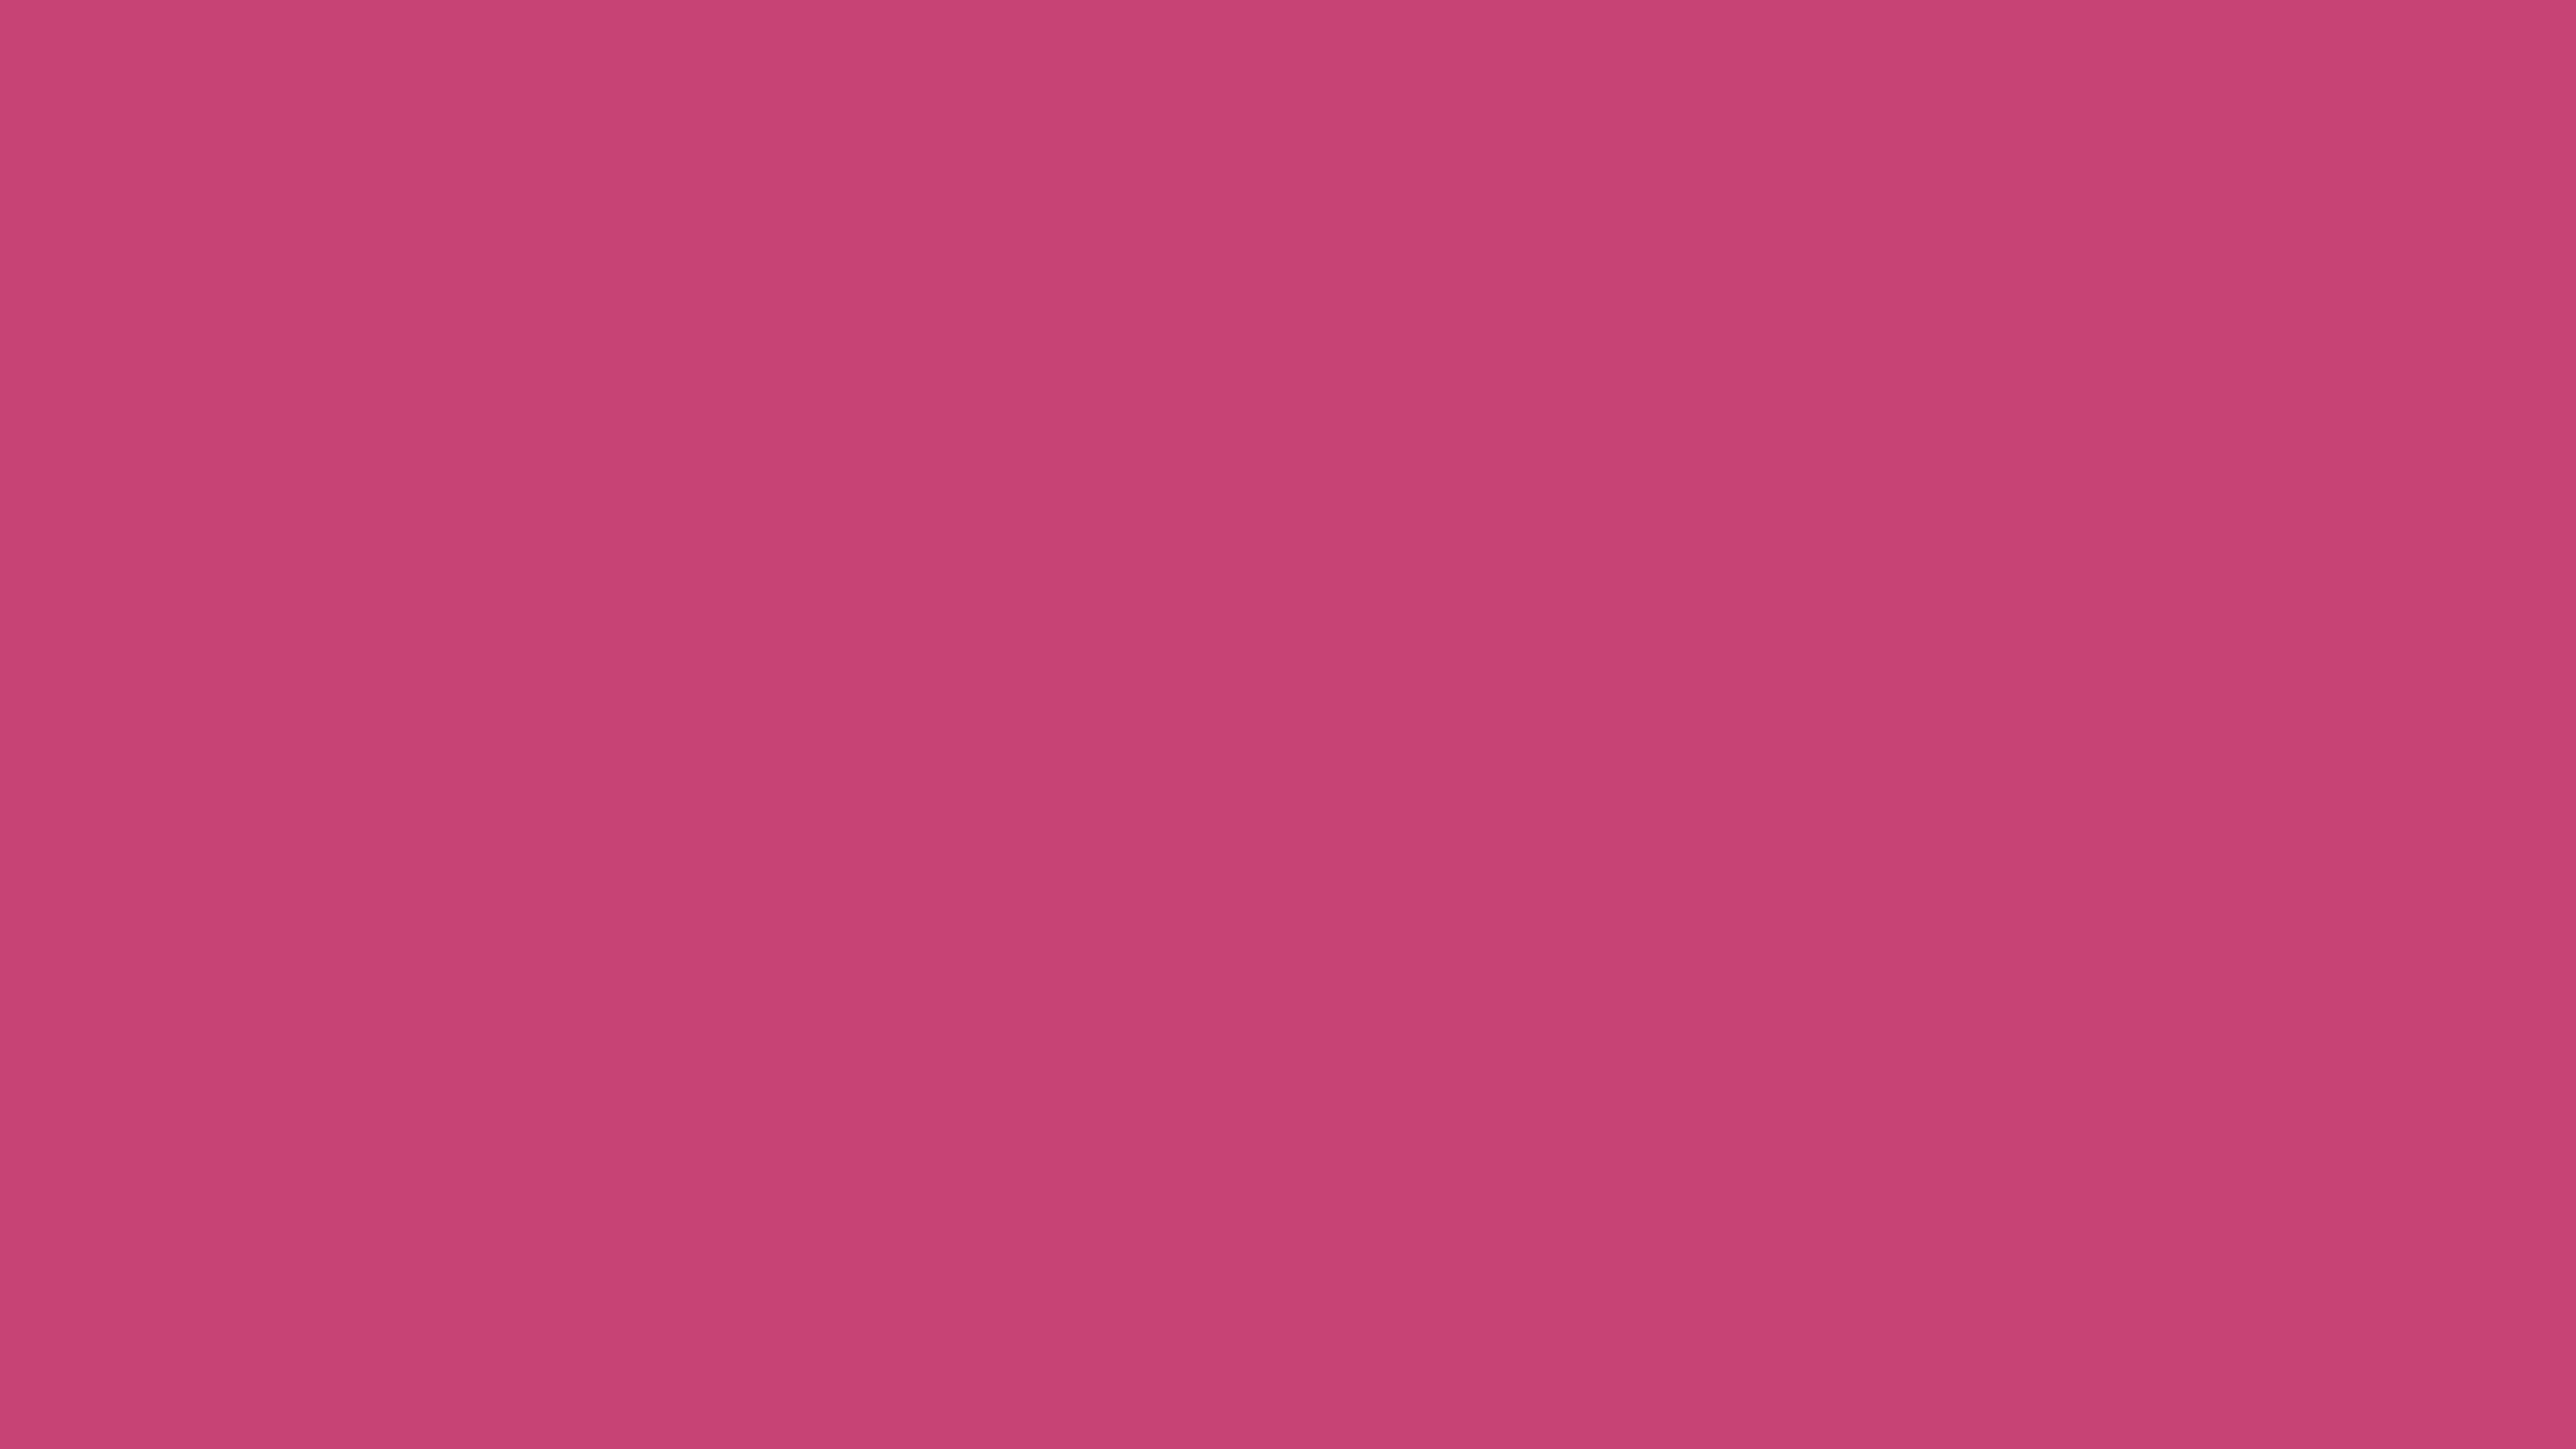 3840x2160 Fuchsia Rose Solid Color Background